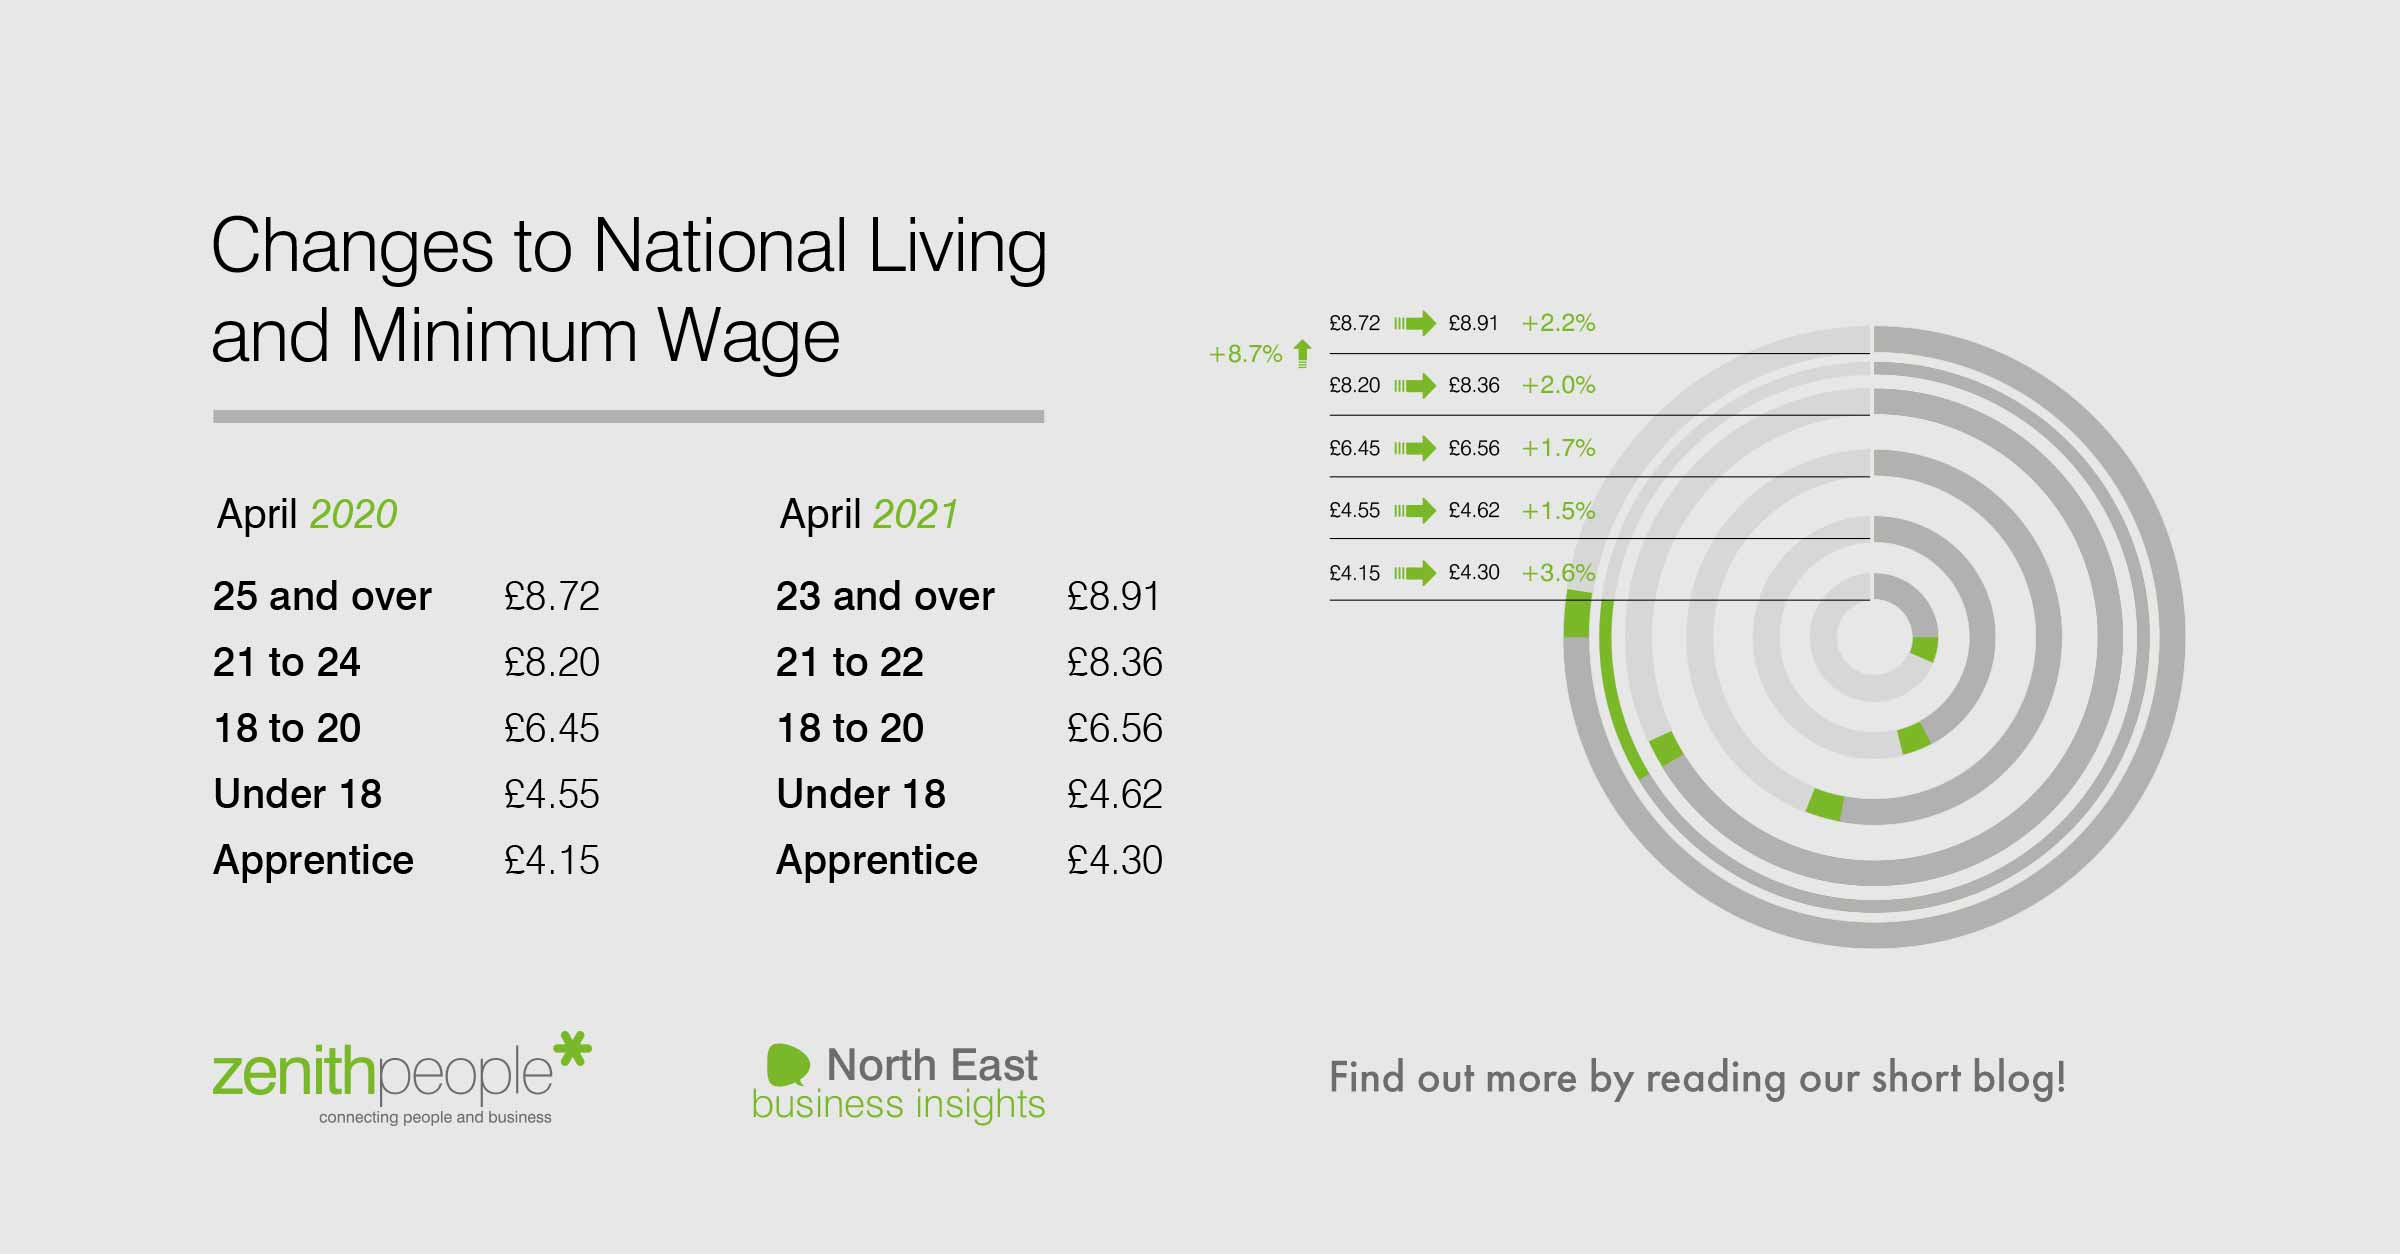 Infographic on the changes to national living and minimum wage in April 2021